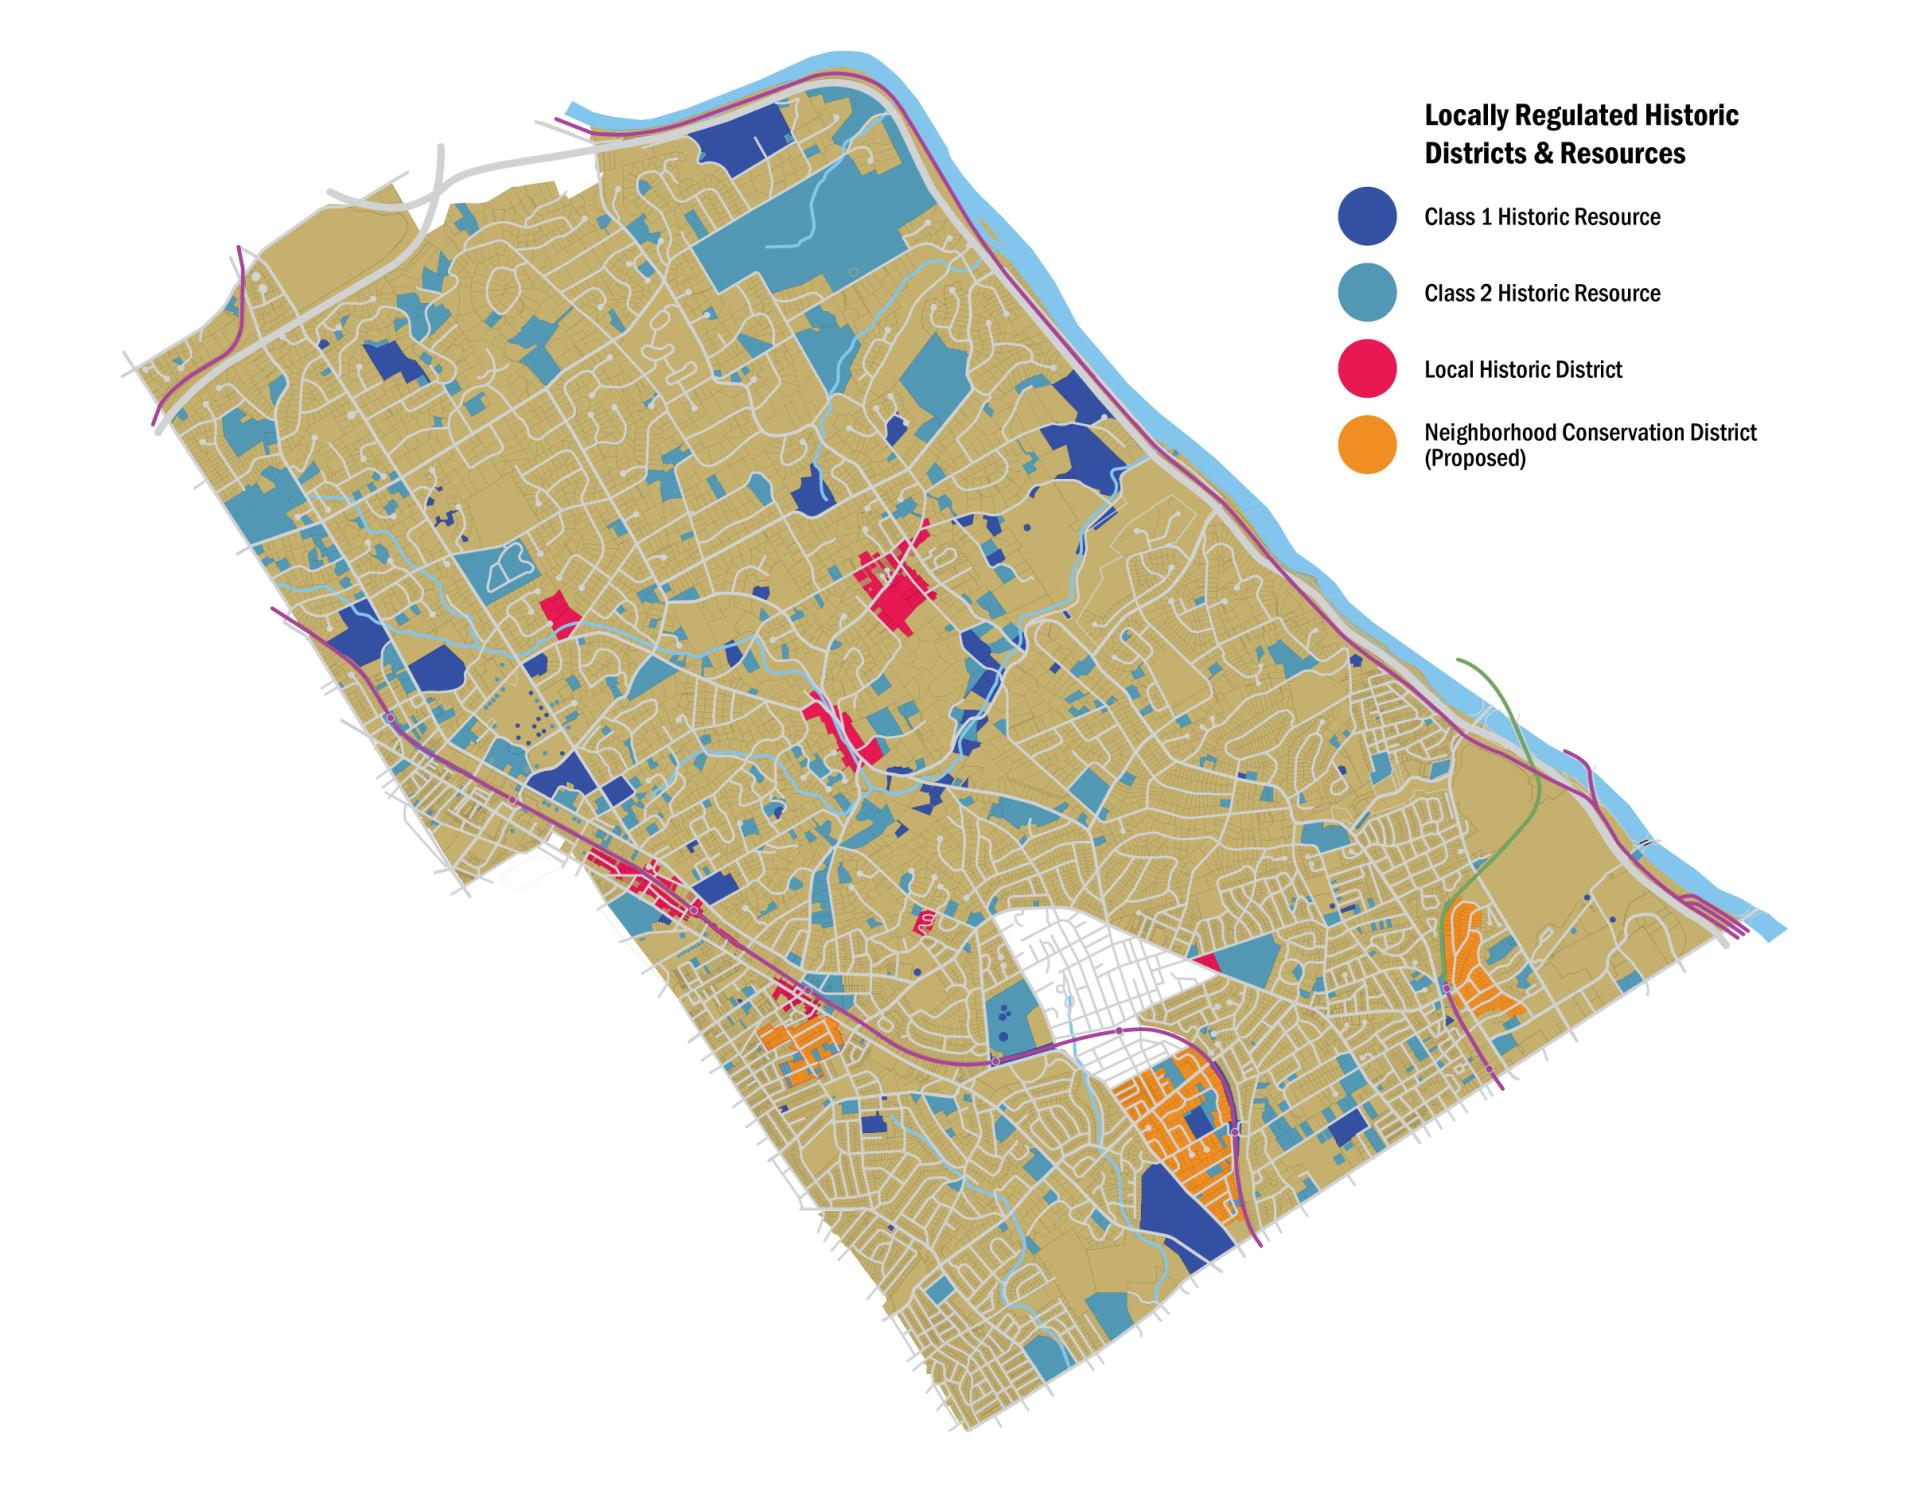 Township Map - HDs and NCDs